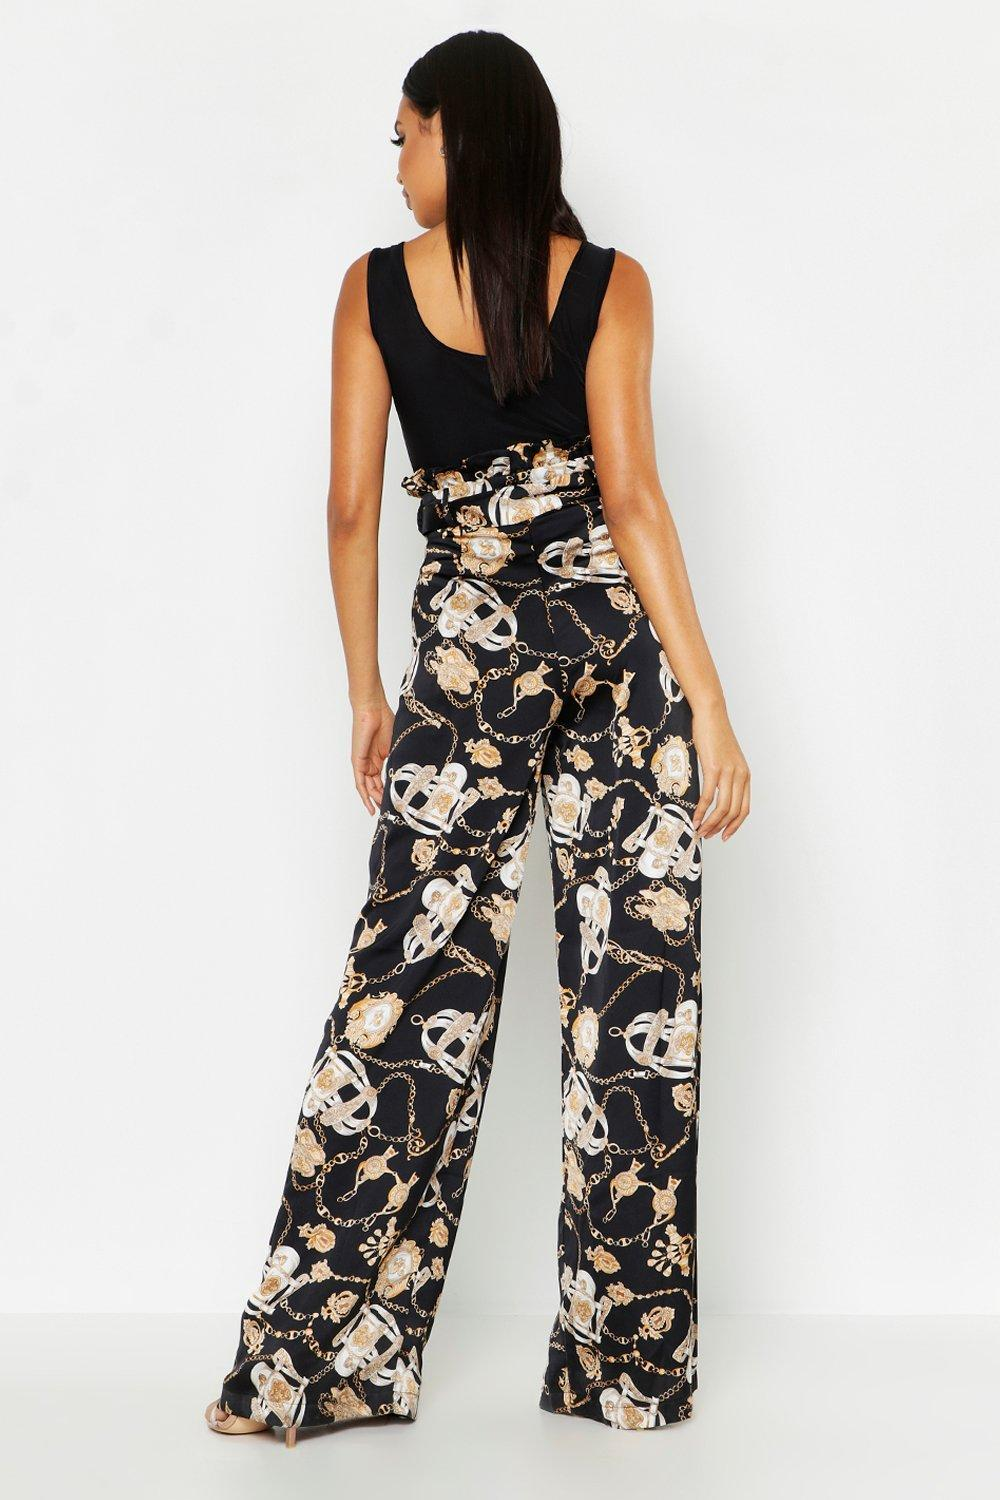 93d7c6716b75 Boohoo - White Satin Chain Print Belted Paperbag Trousers - Lyst. View  fullscreen